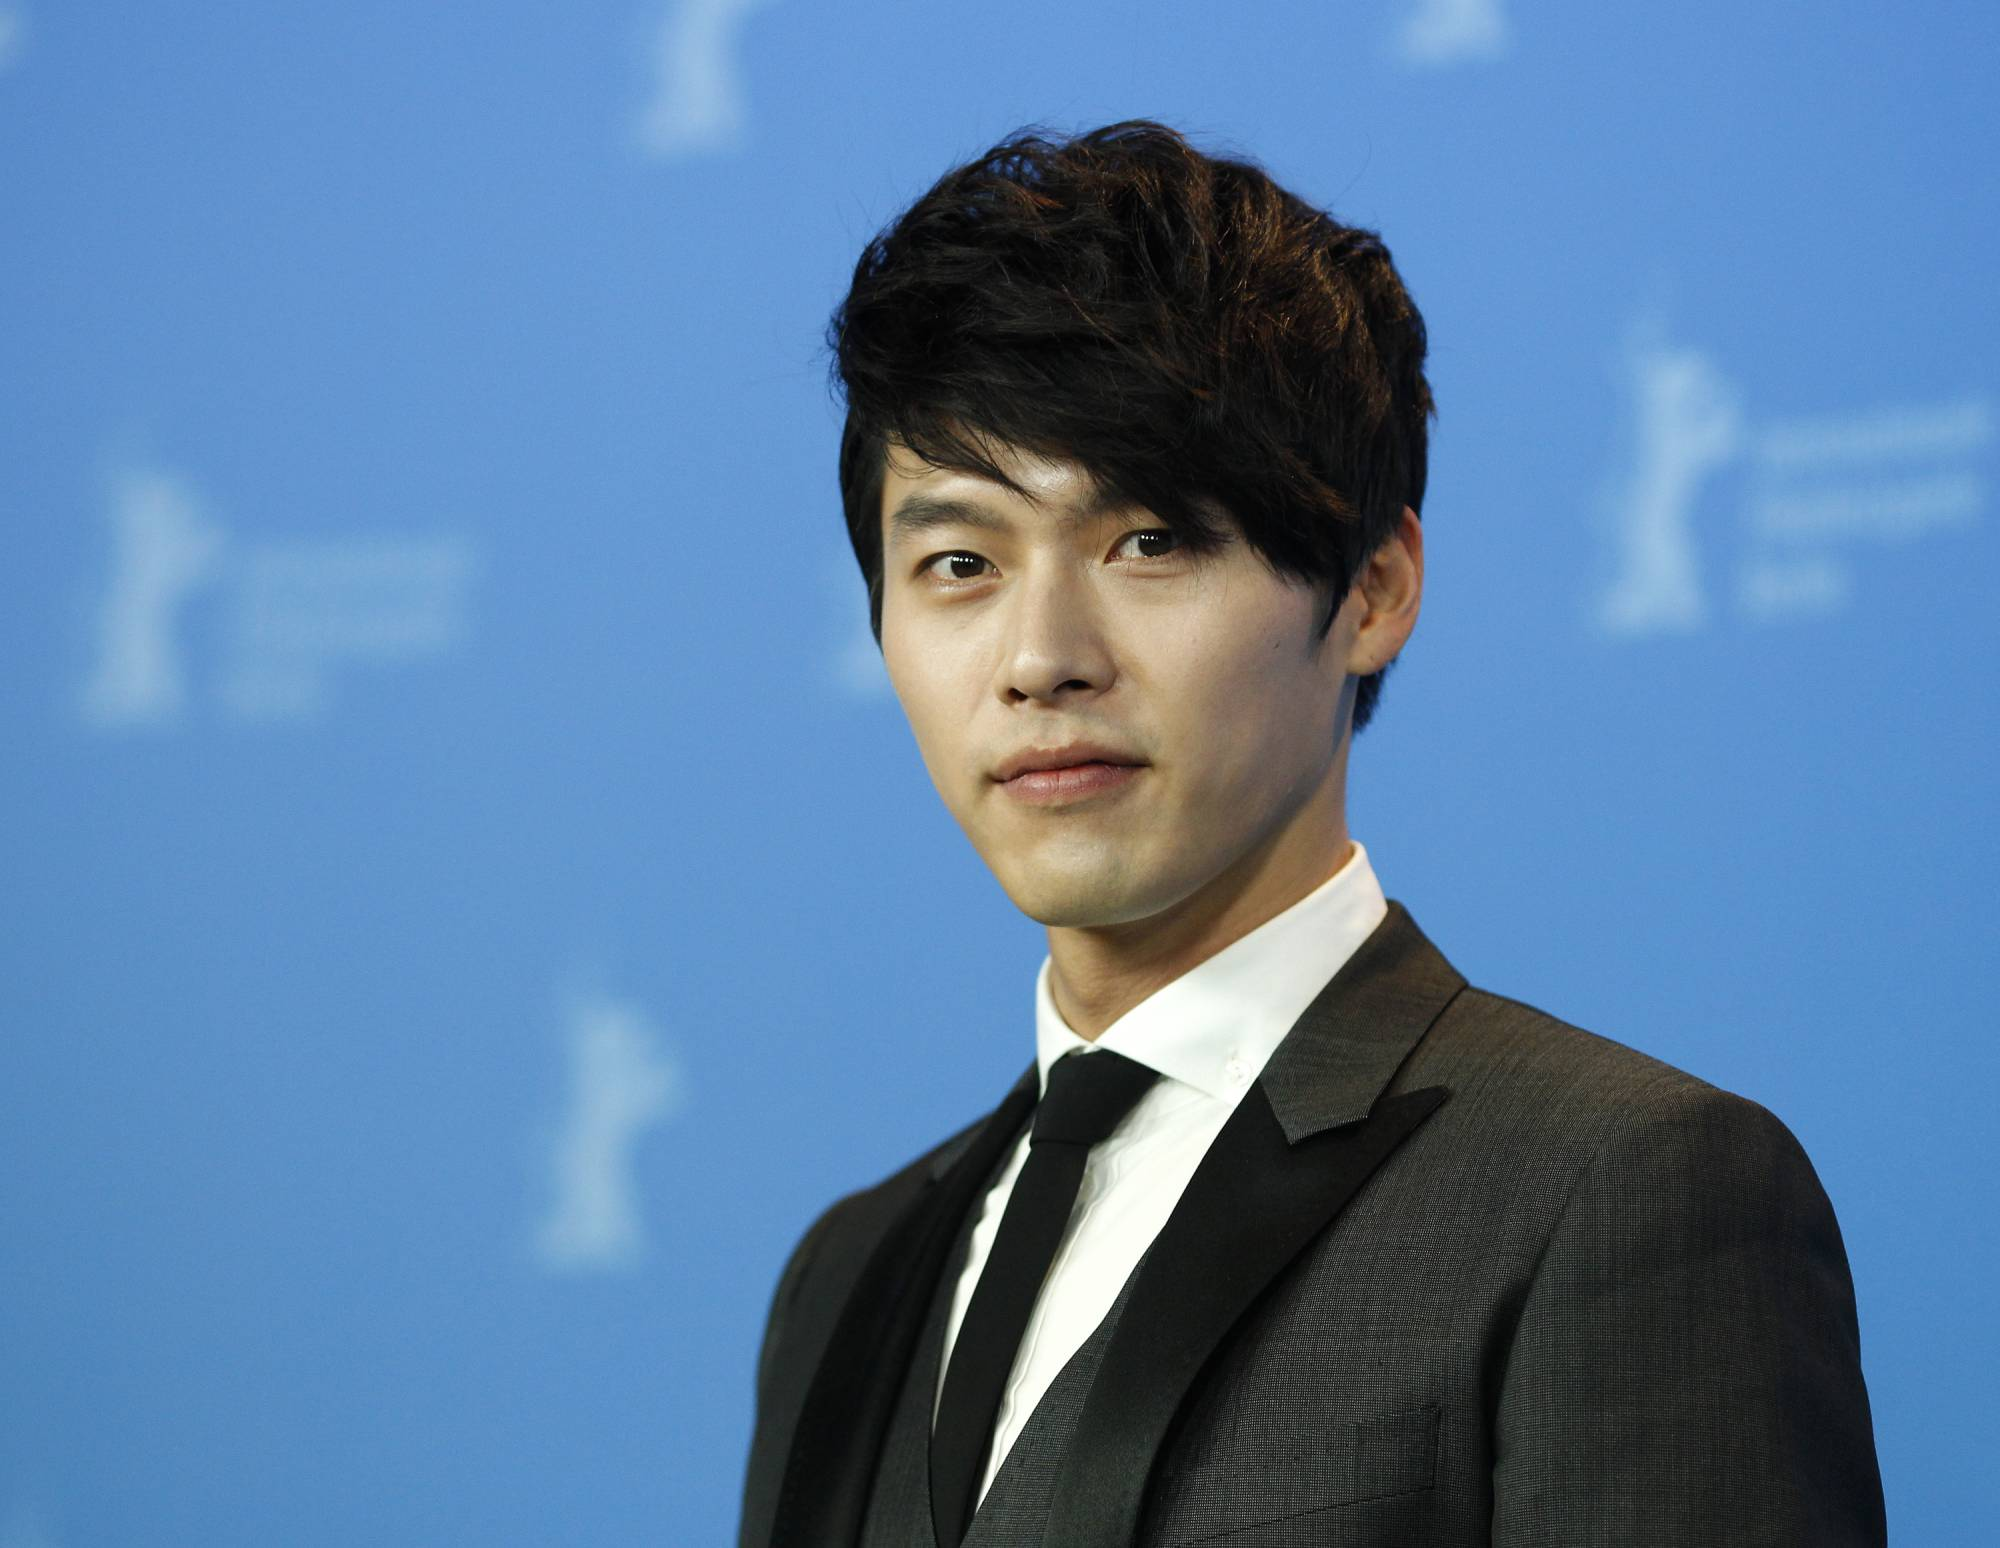 Actor Hyun Bin stars in 'Crash Landing on You,' a TV series on Netflix that has attracted a strong following in Japan during the pandemic. | REUTERS